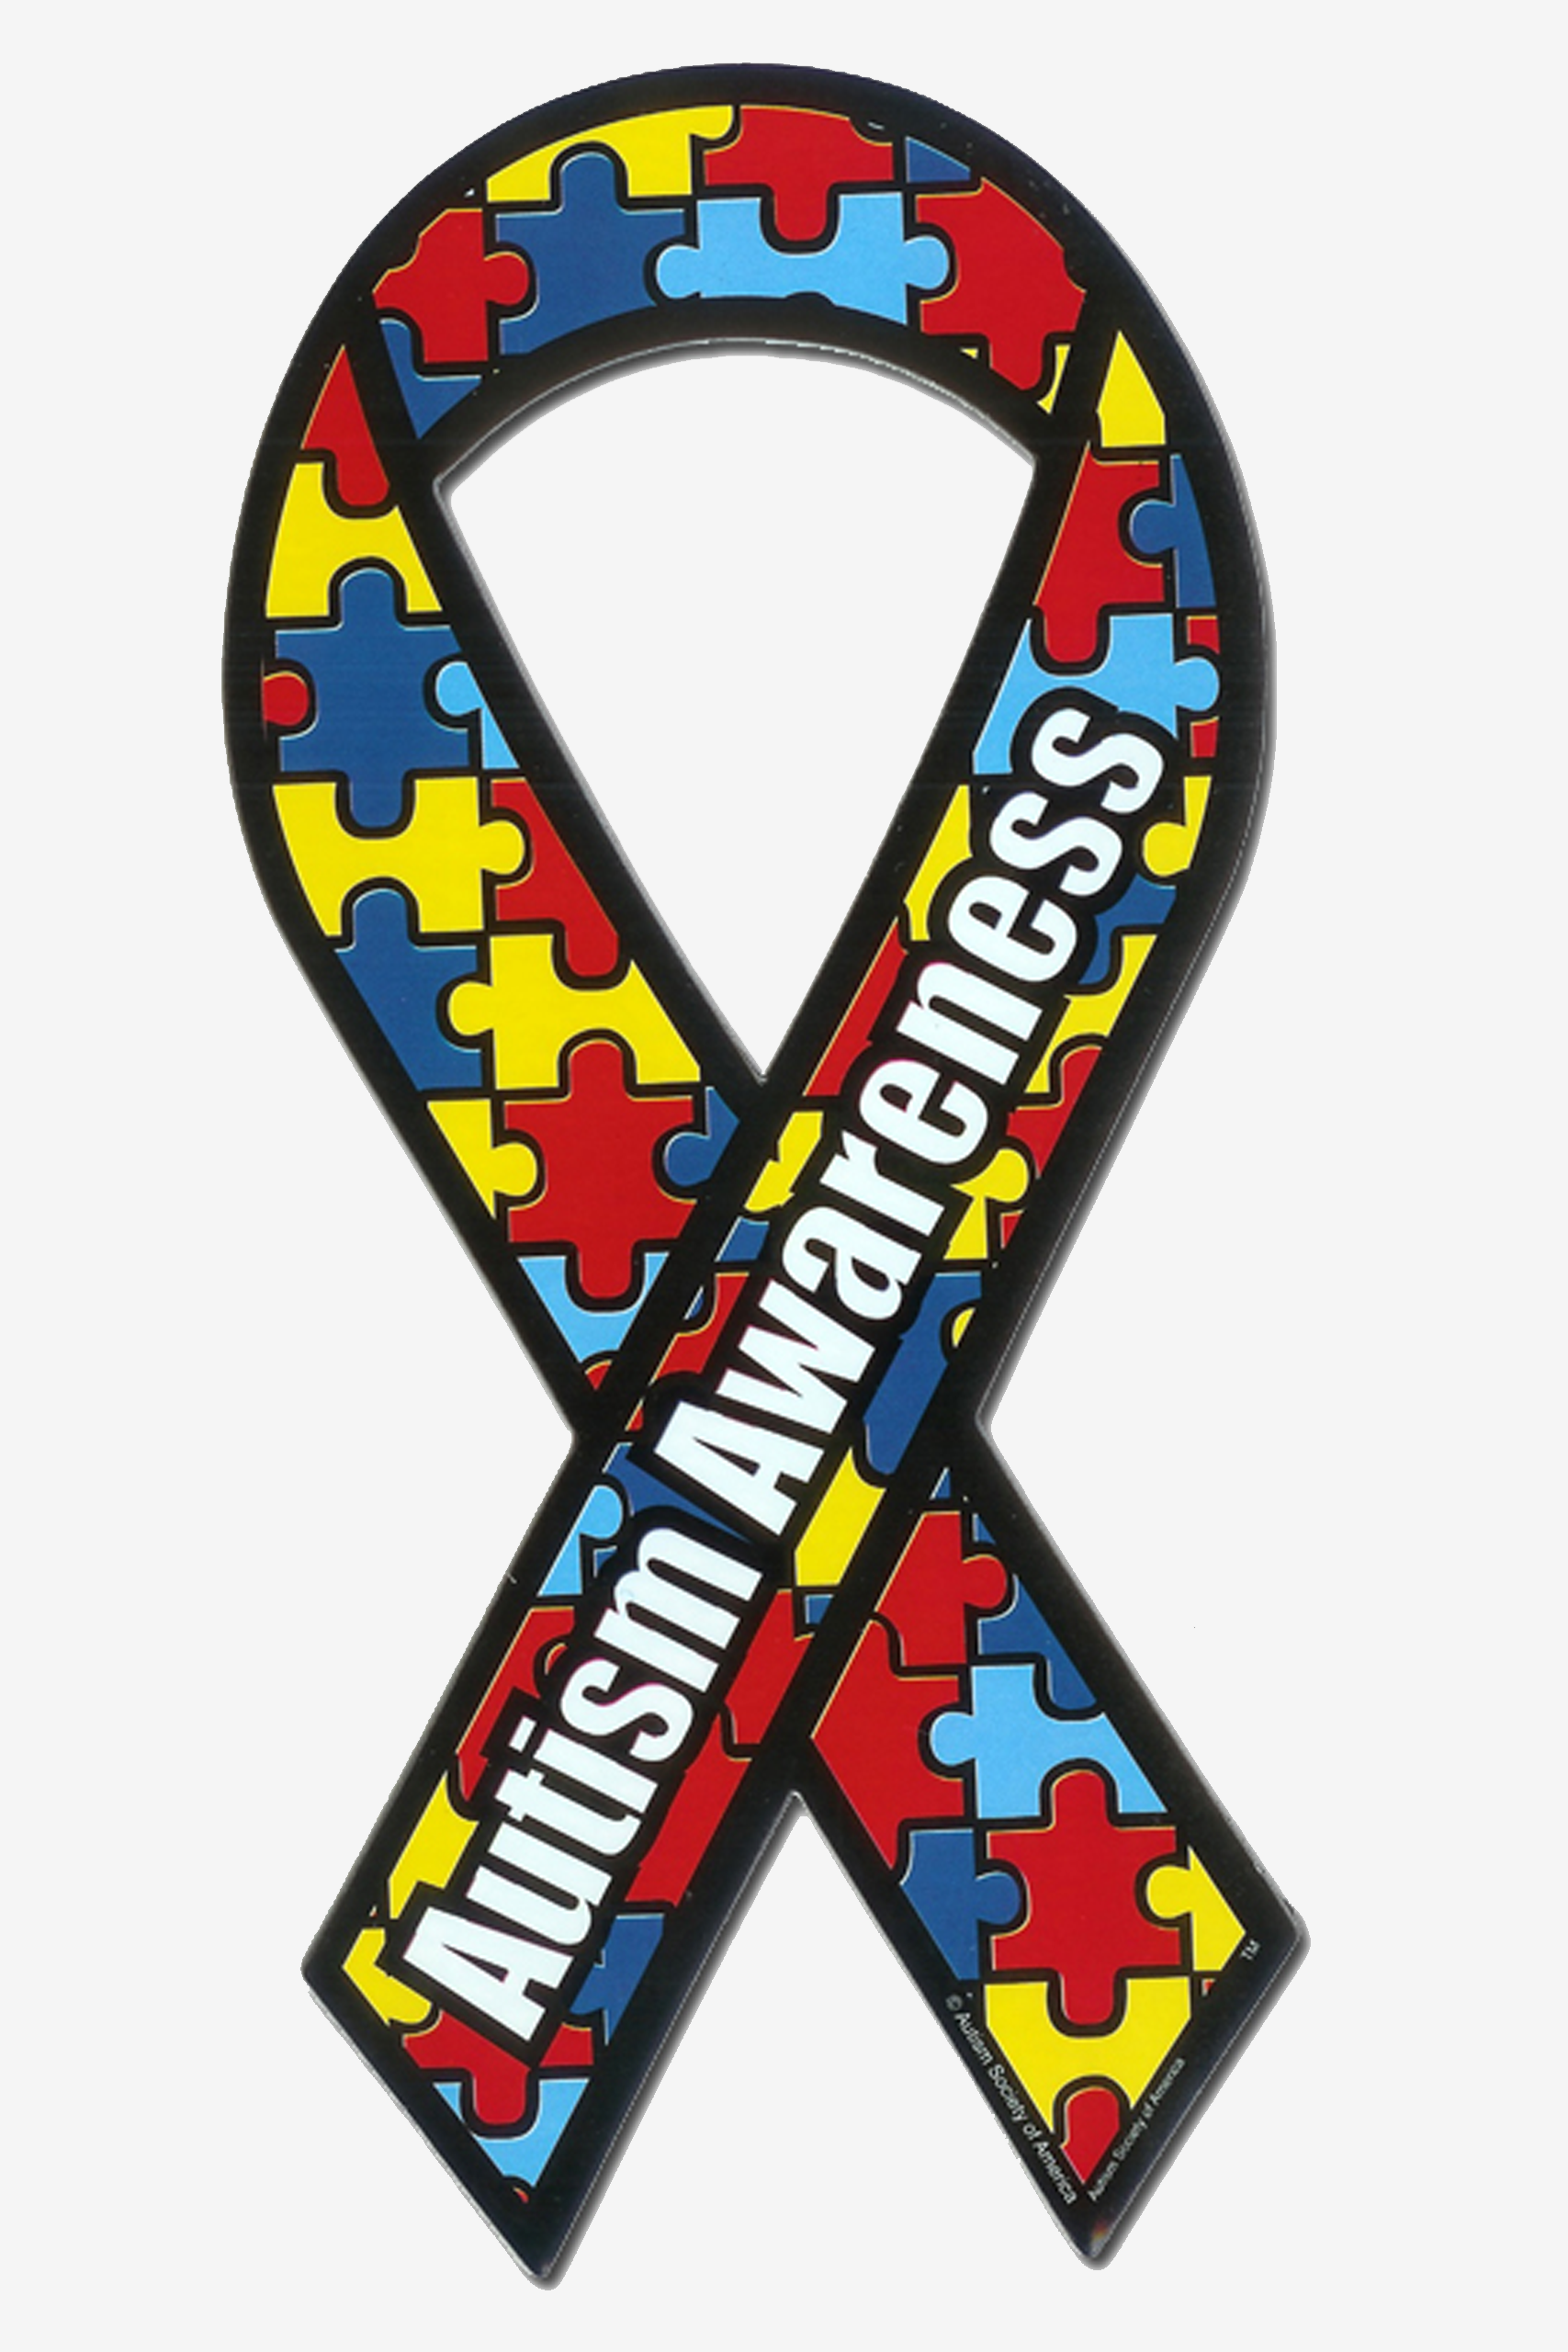 Autism Awareness Ribbon Magnet Future Horizons